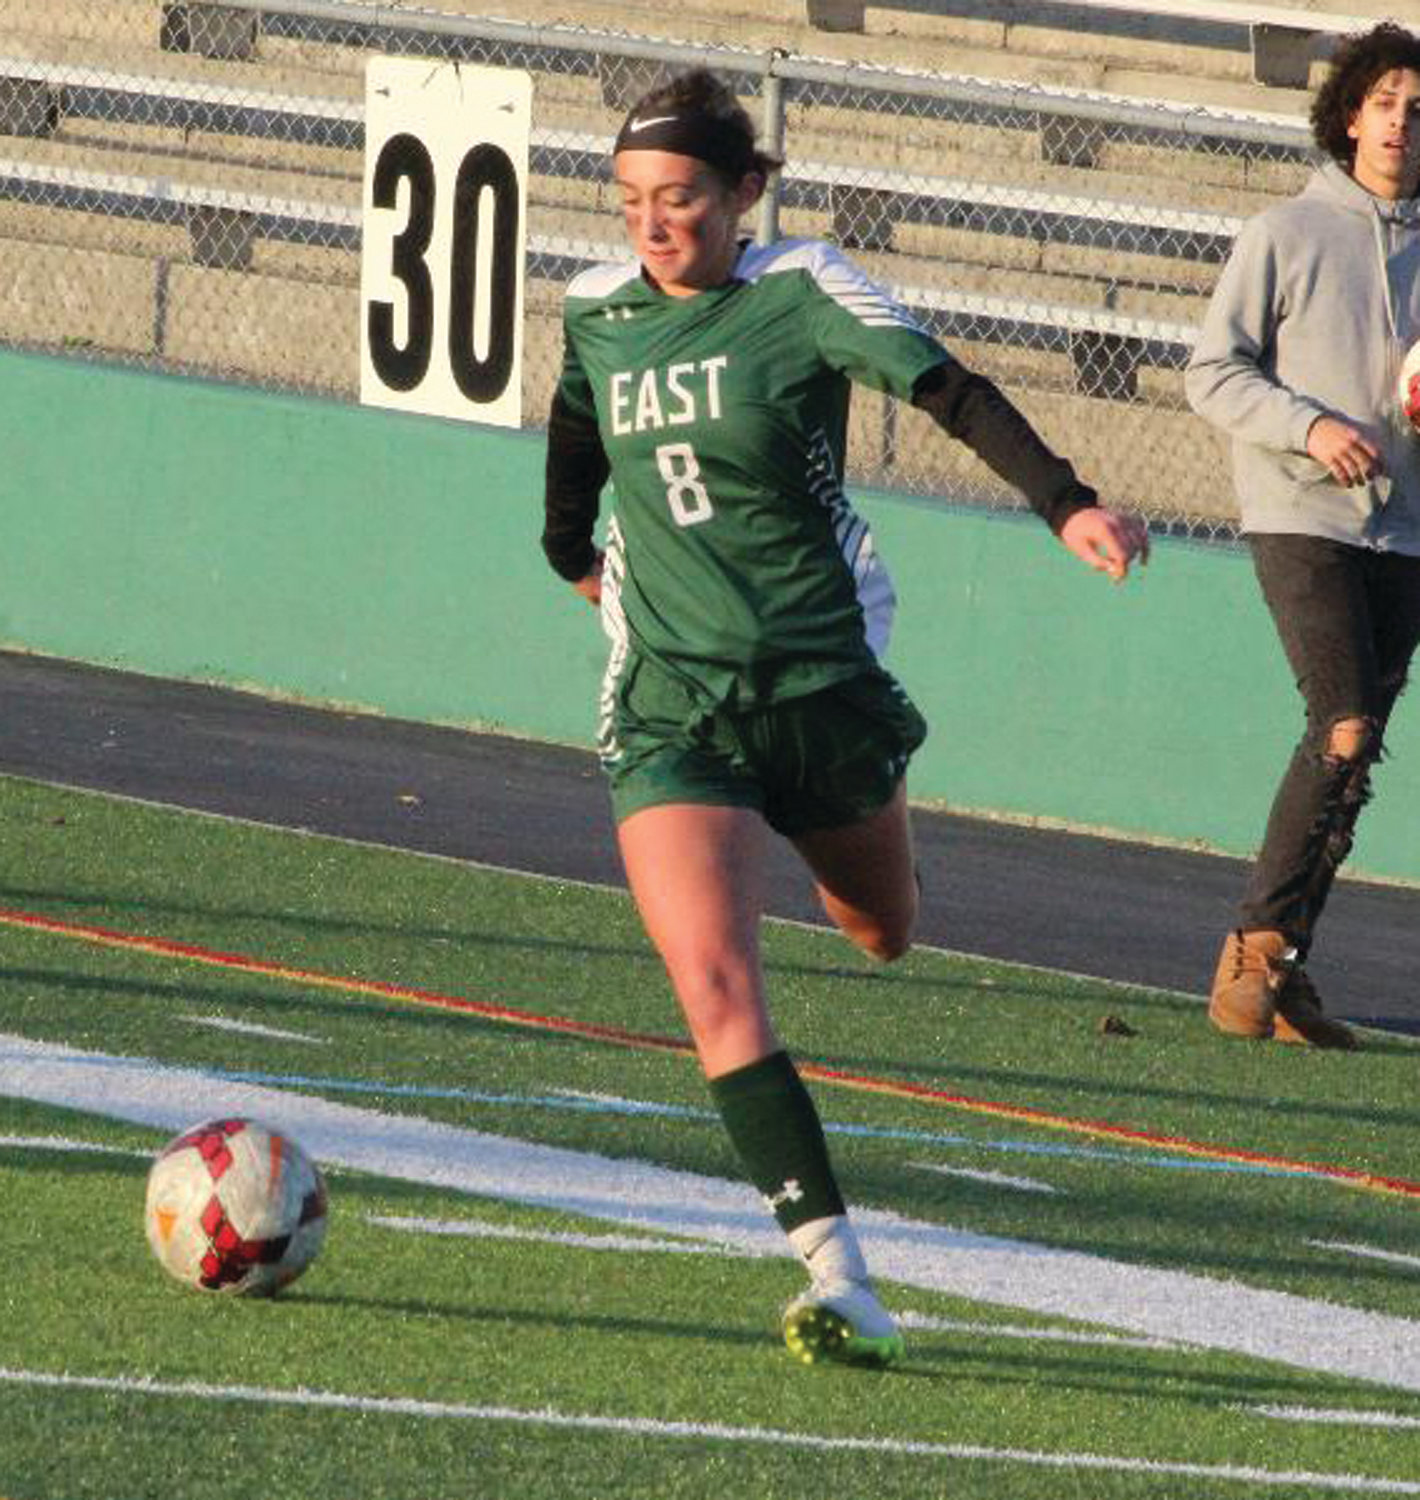 PLAYOFF SOCCER: Cranston East girls soccer player Abigail Cahill looks to pass against Rogers in the DIII Quarterfinals.